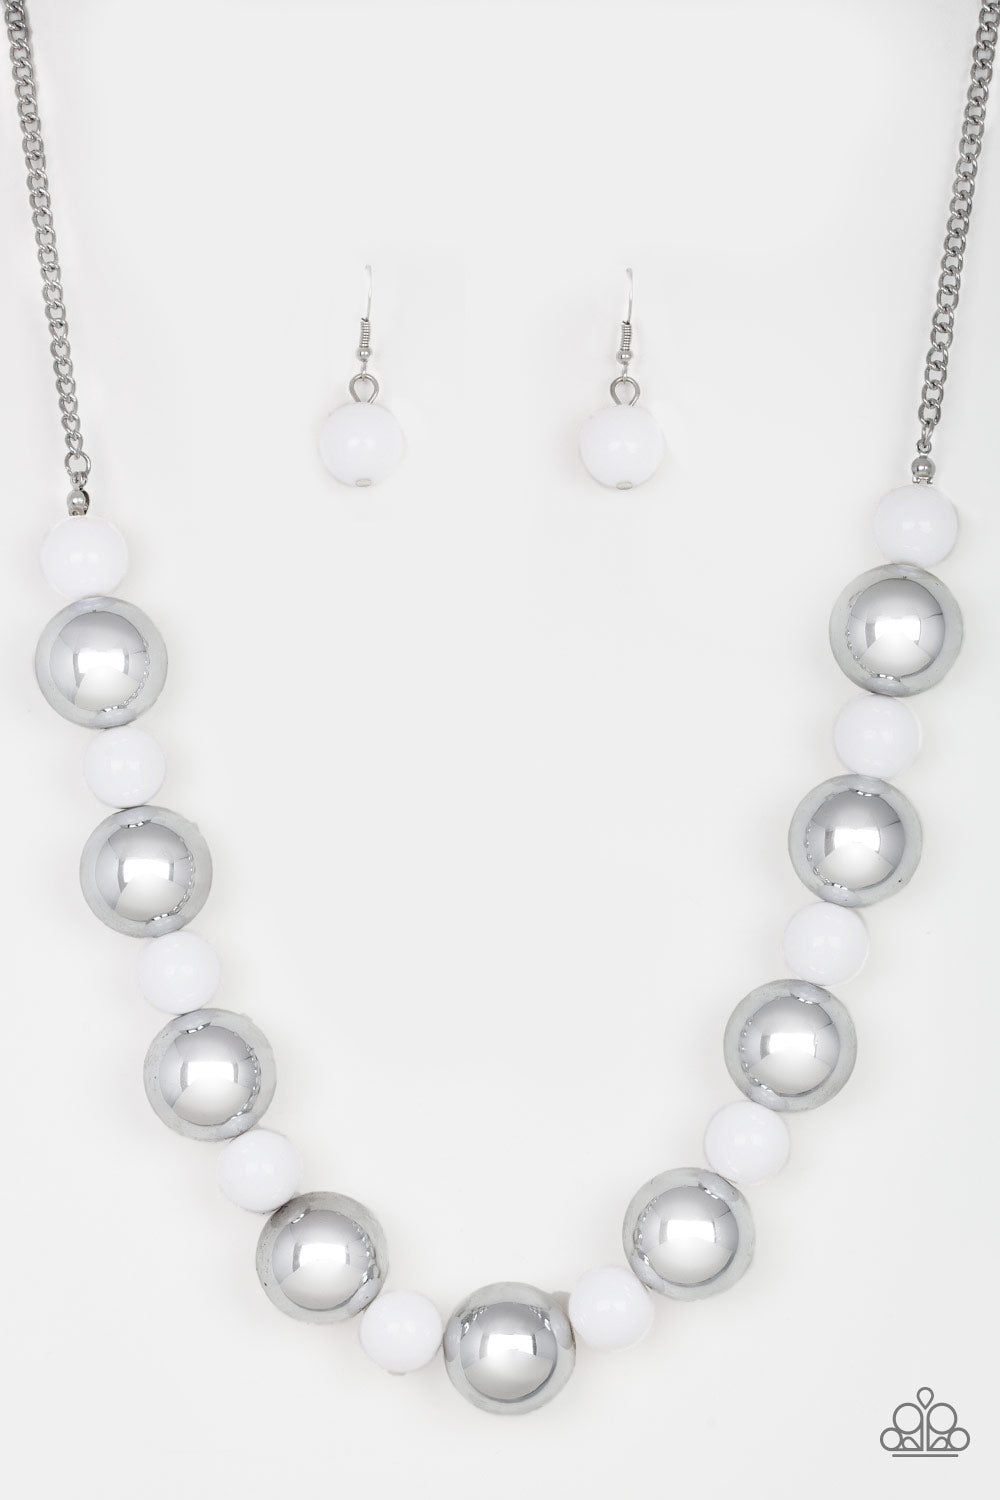 Paparazzi Accessories - Top Pop - White Necklace Set - JMJ Jewelry Collection